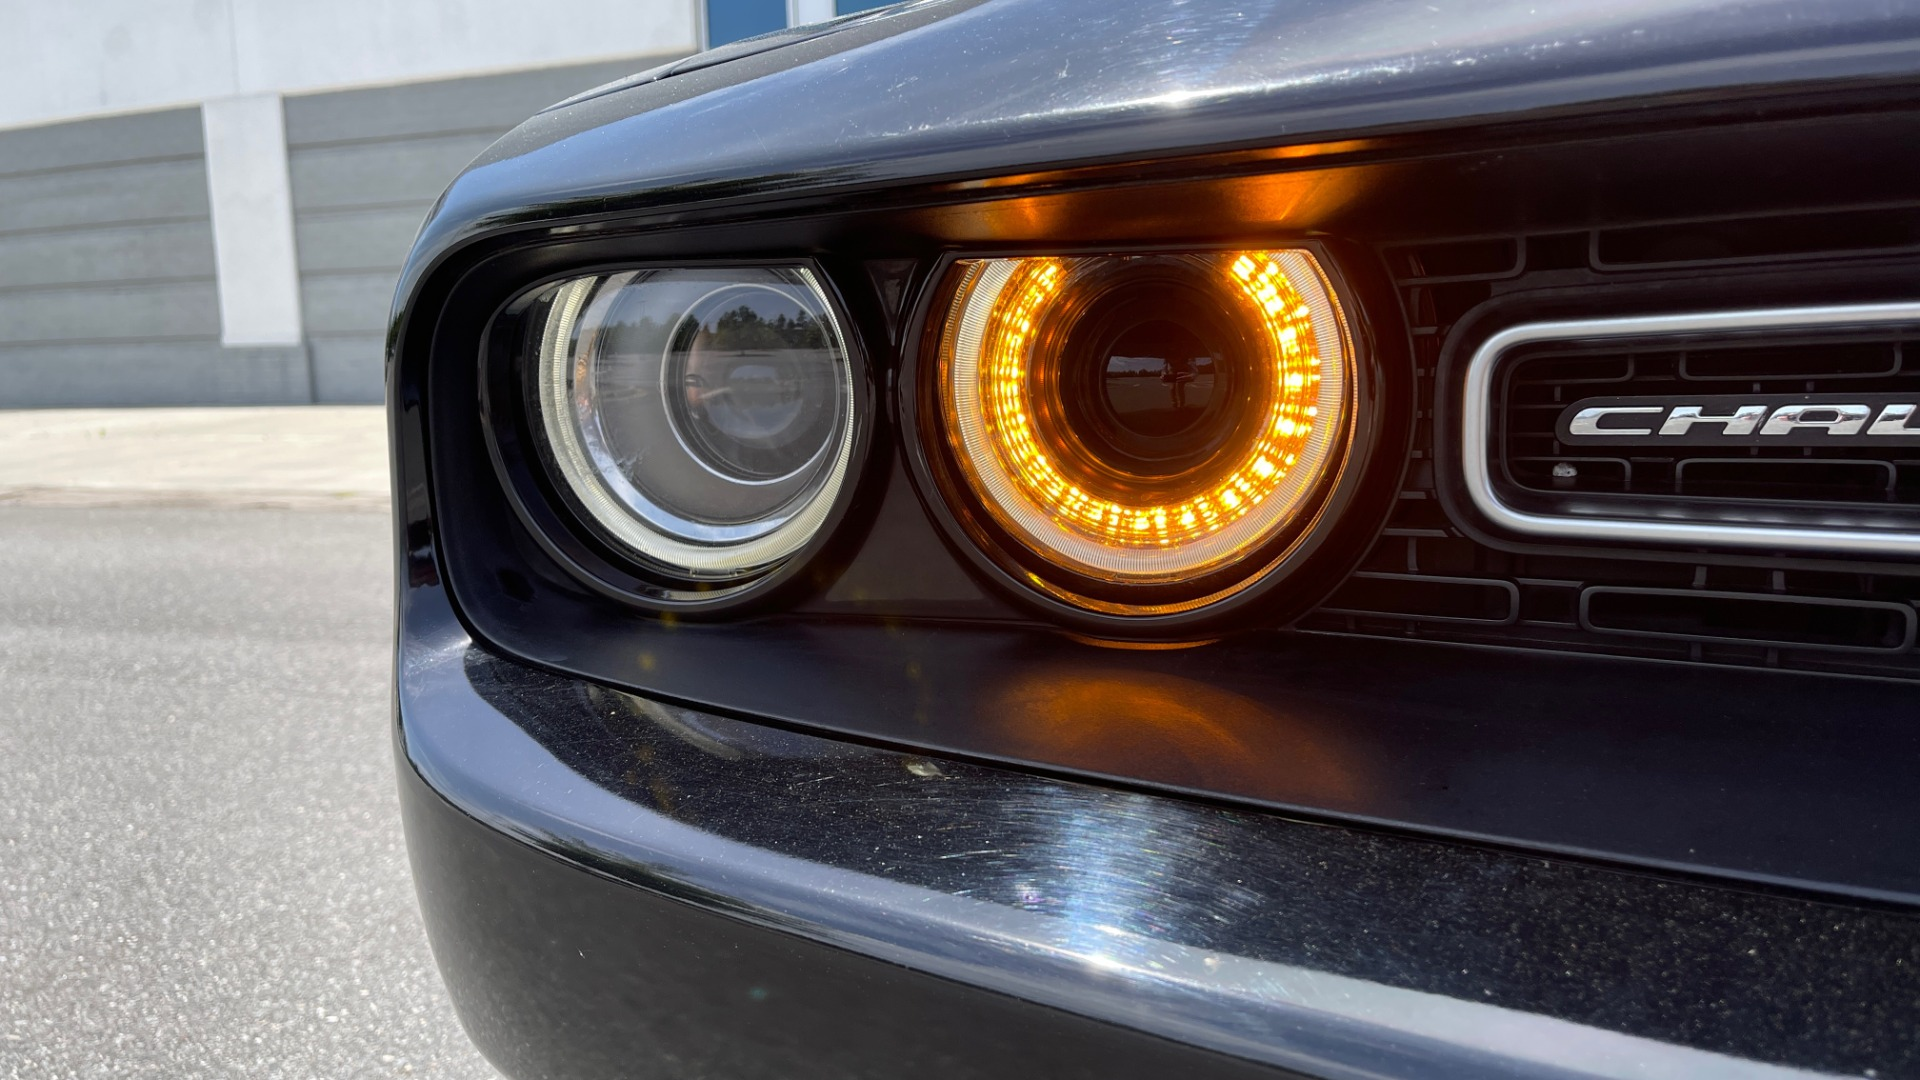 Used 2015 Dodge CHALLENGER SXT PLUS COUPE / 3.6L V6 / 8-SPD AUTO / NAV / ALPINE / SUNROOF / REARVIEW for sale Sold at Formula Imports in Charlotte NC 28227 12